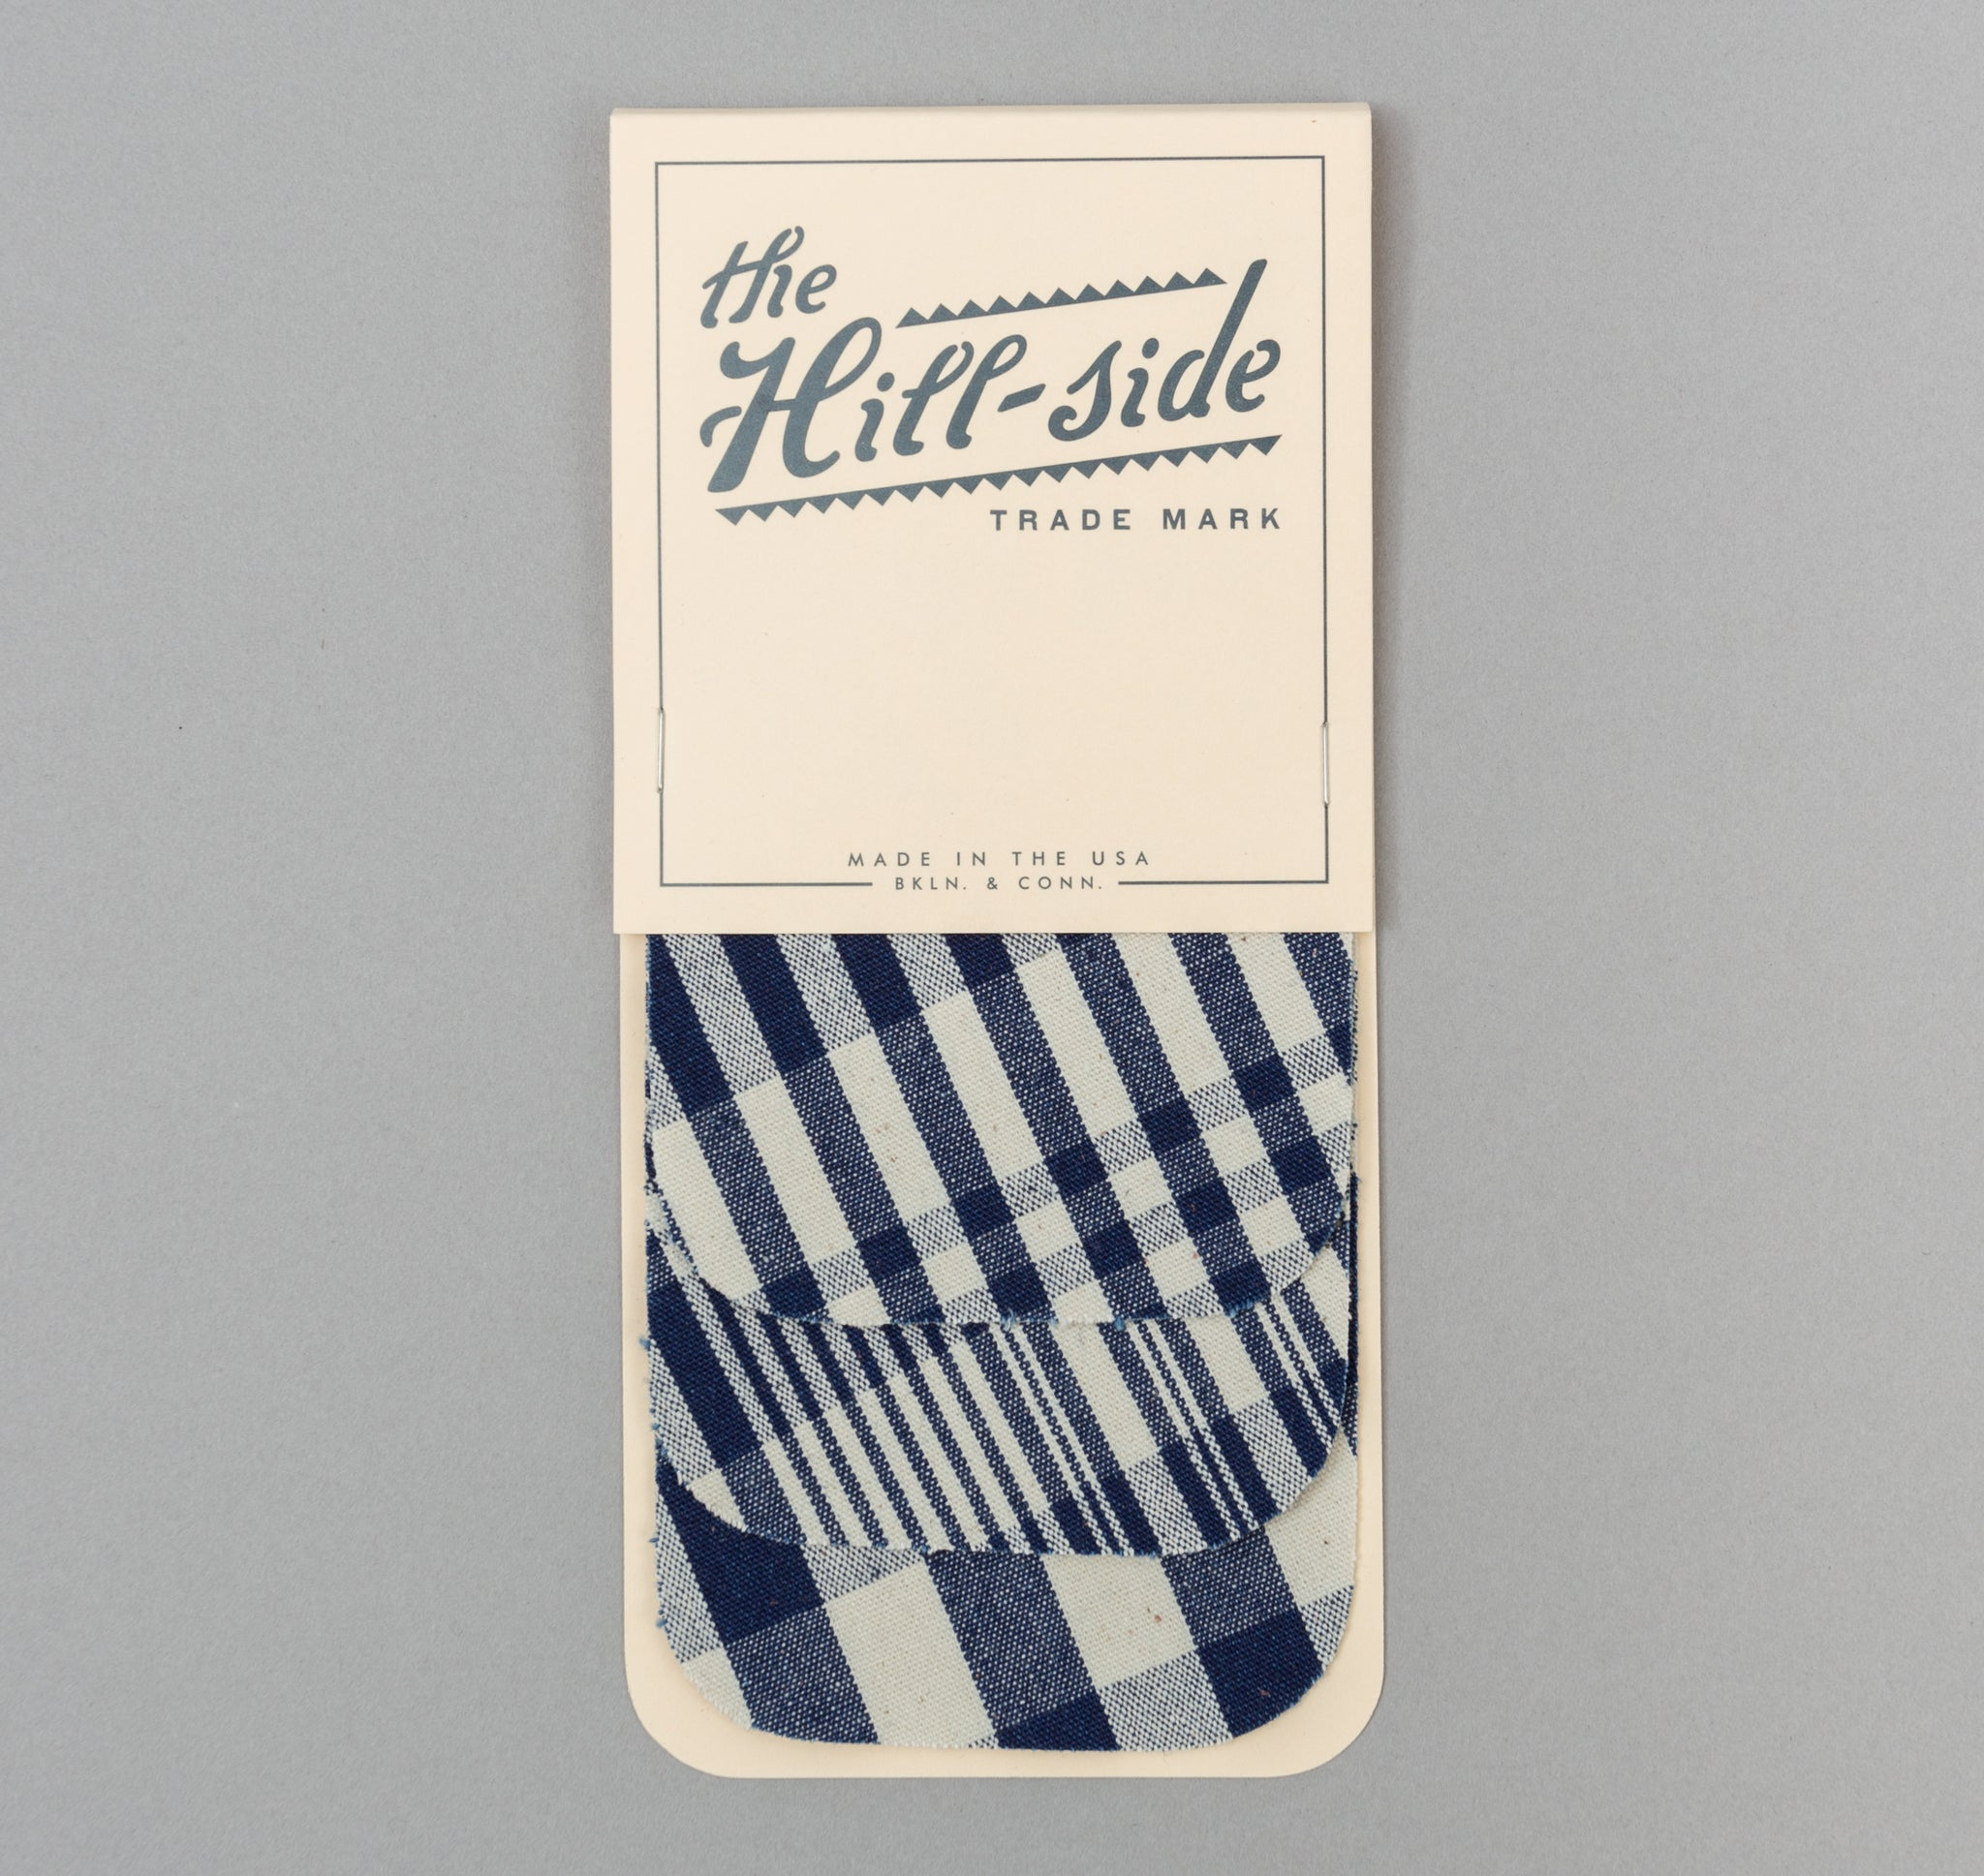 The Hill-Side - Non-Repeating Check Oxford Iron-On Patches, Indigo / White - PA1-321 - image 1